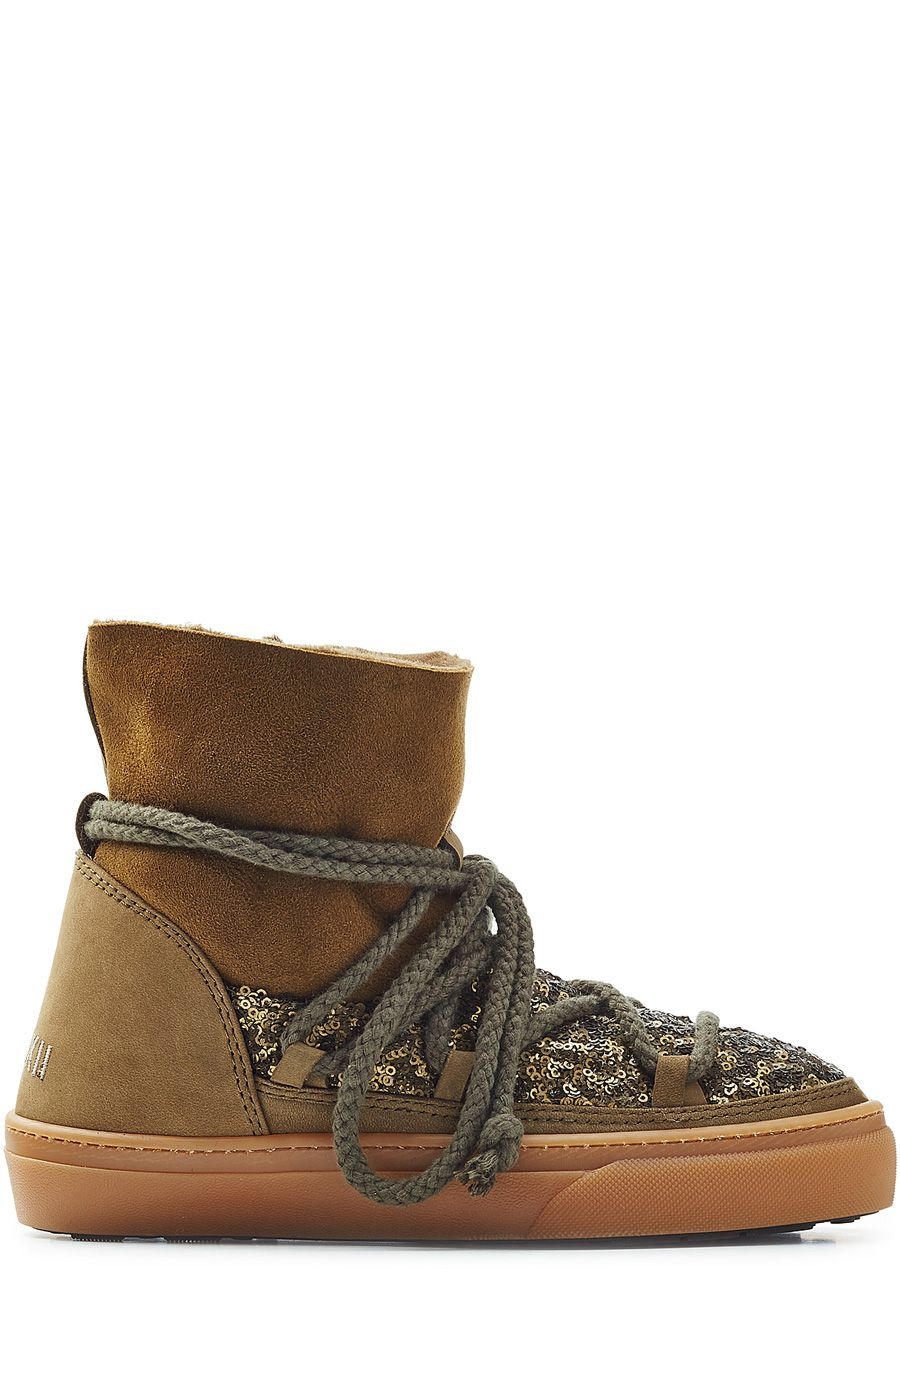 1af5bbe6df2 INUIKII Sequin And Suede Ikkii Low Sneakers. #inuikii #shoes #boots ...